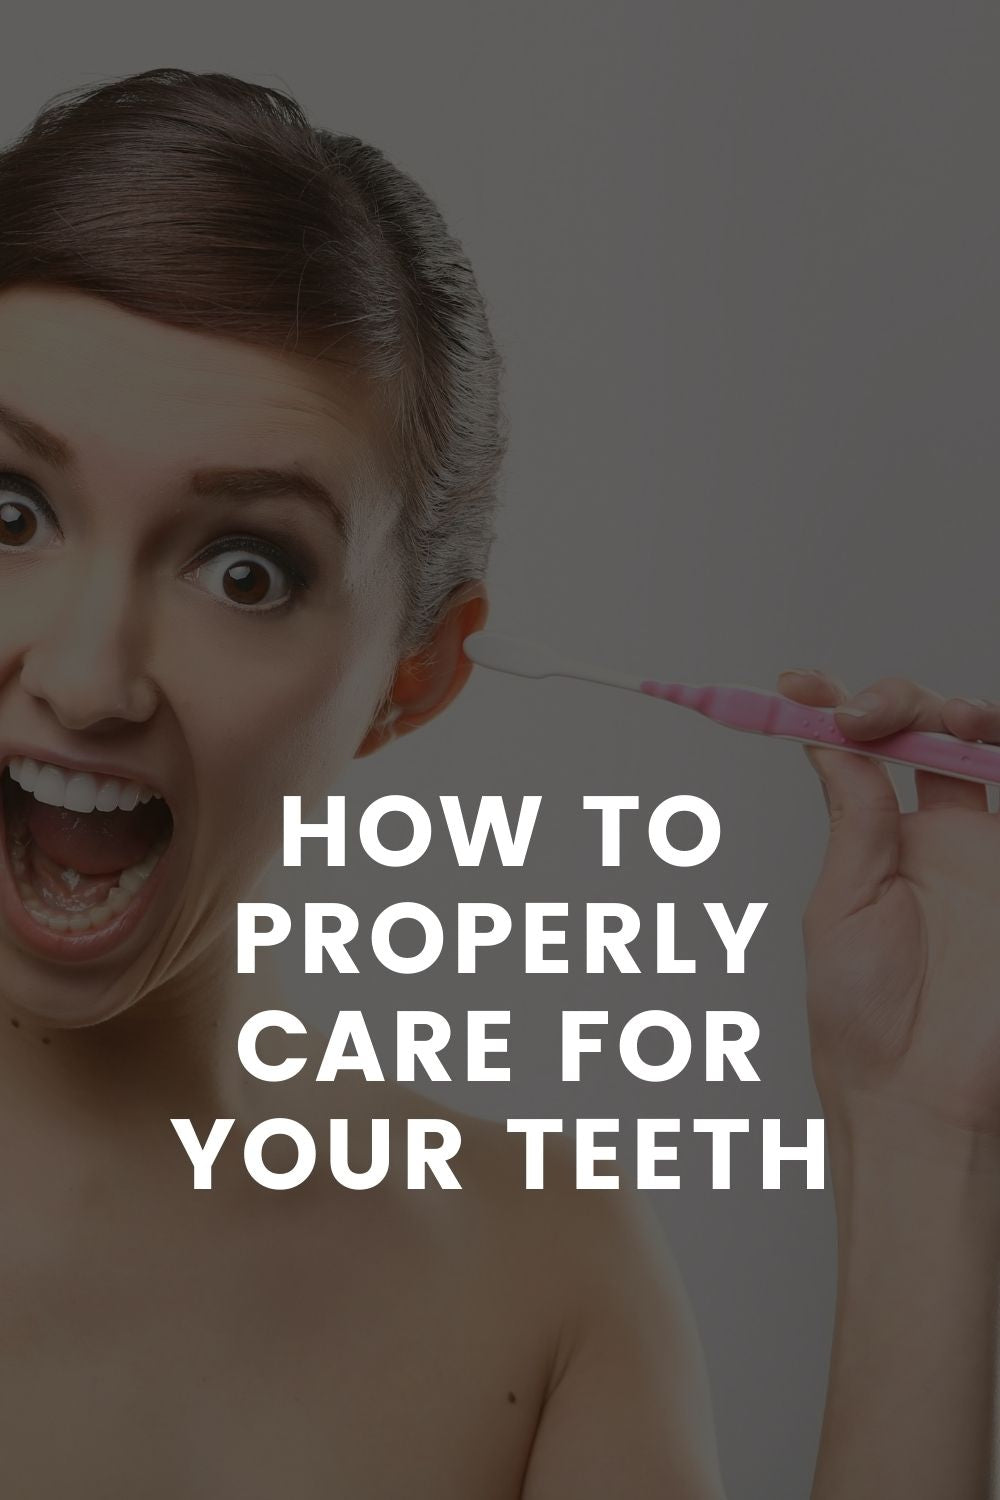 HOW TO PROPERLY CARE FOR YOUR TEETH